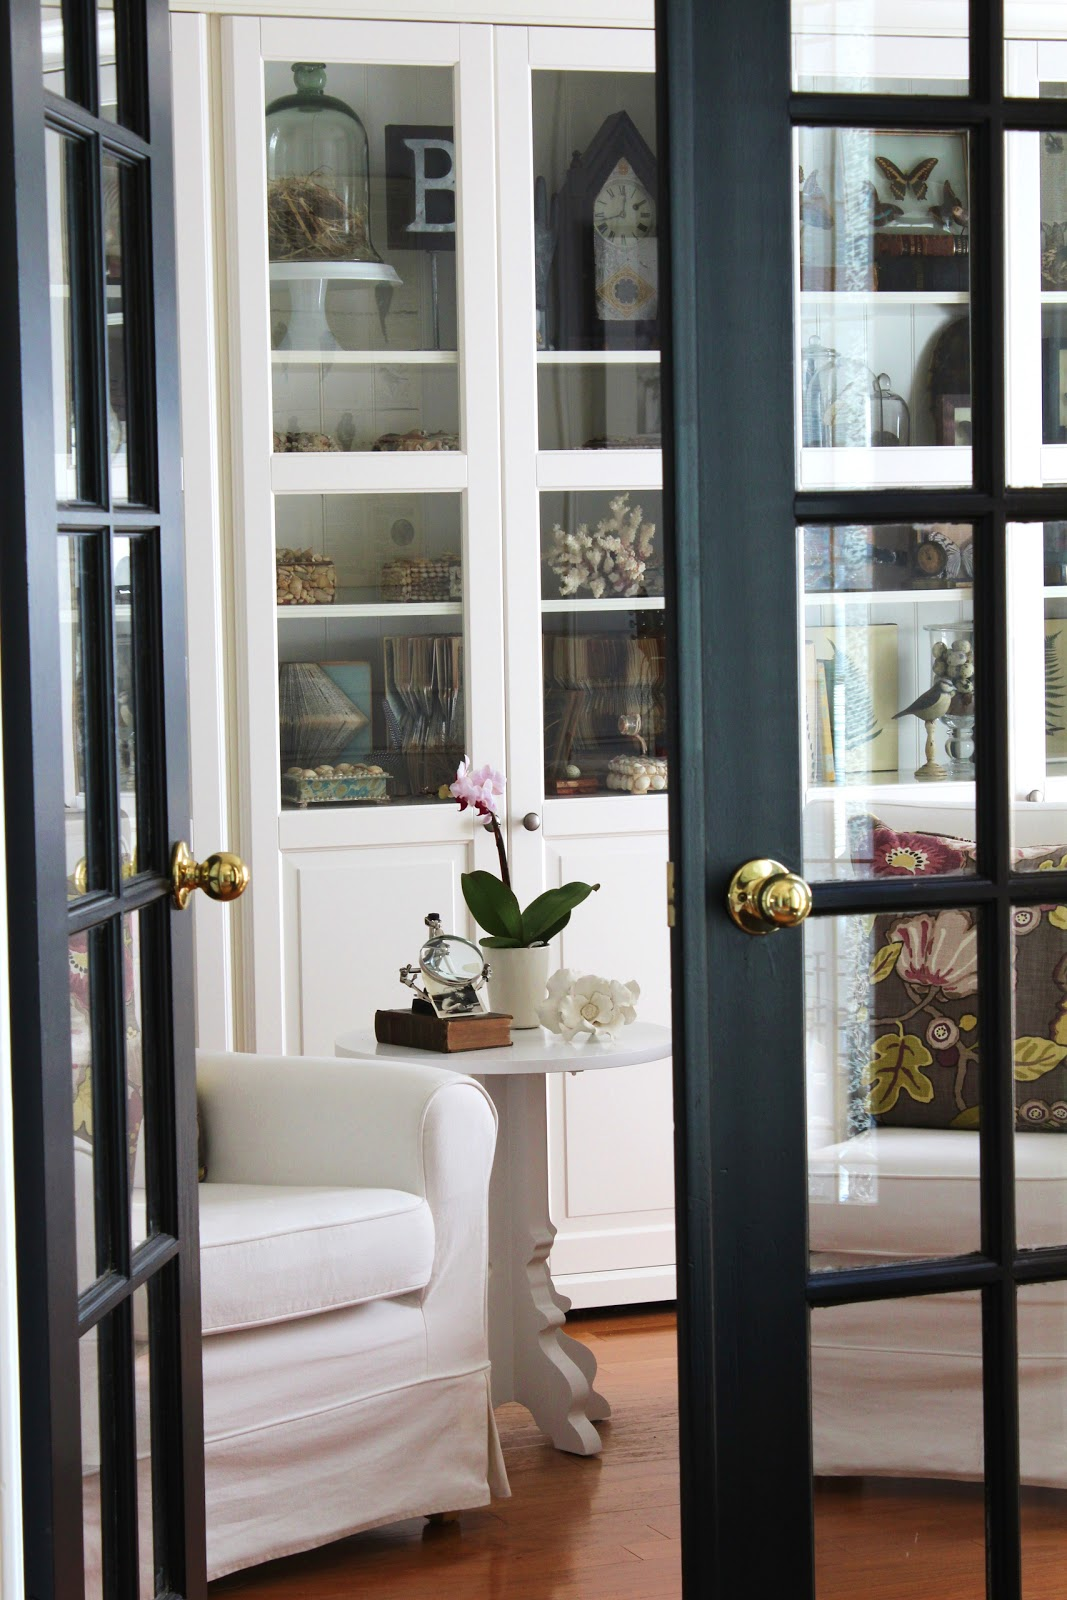 Interior french doors interior french doors for office - Interior french doors for office ...